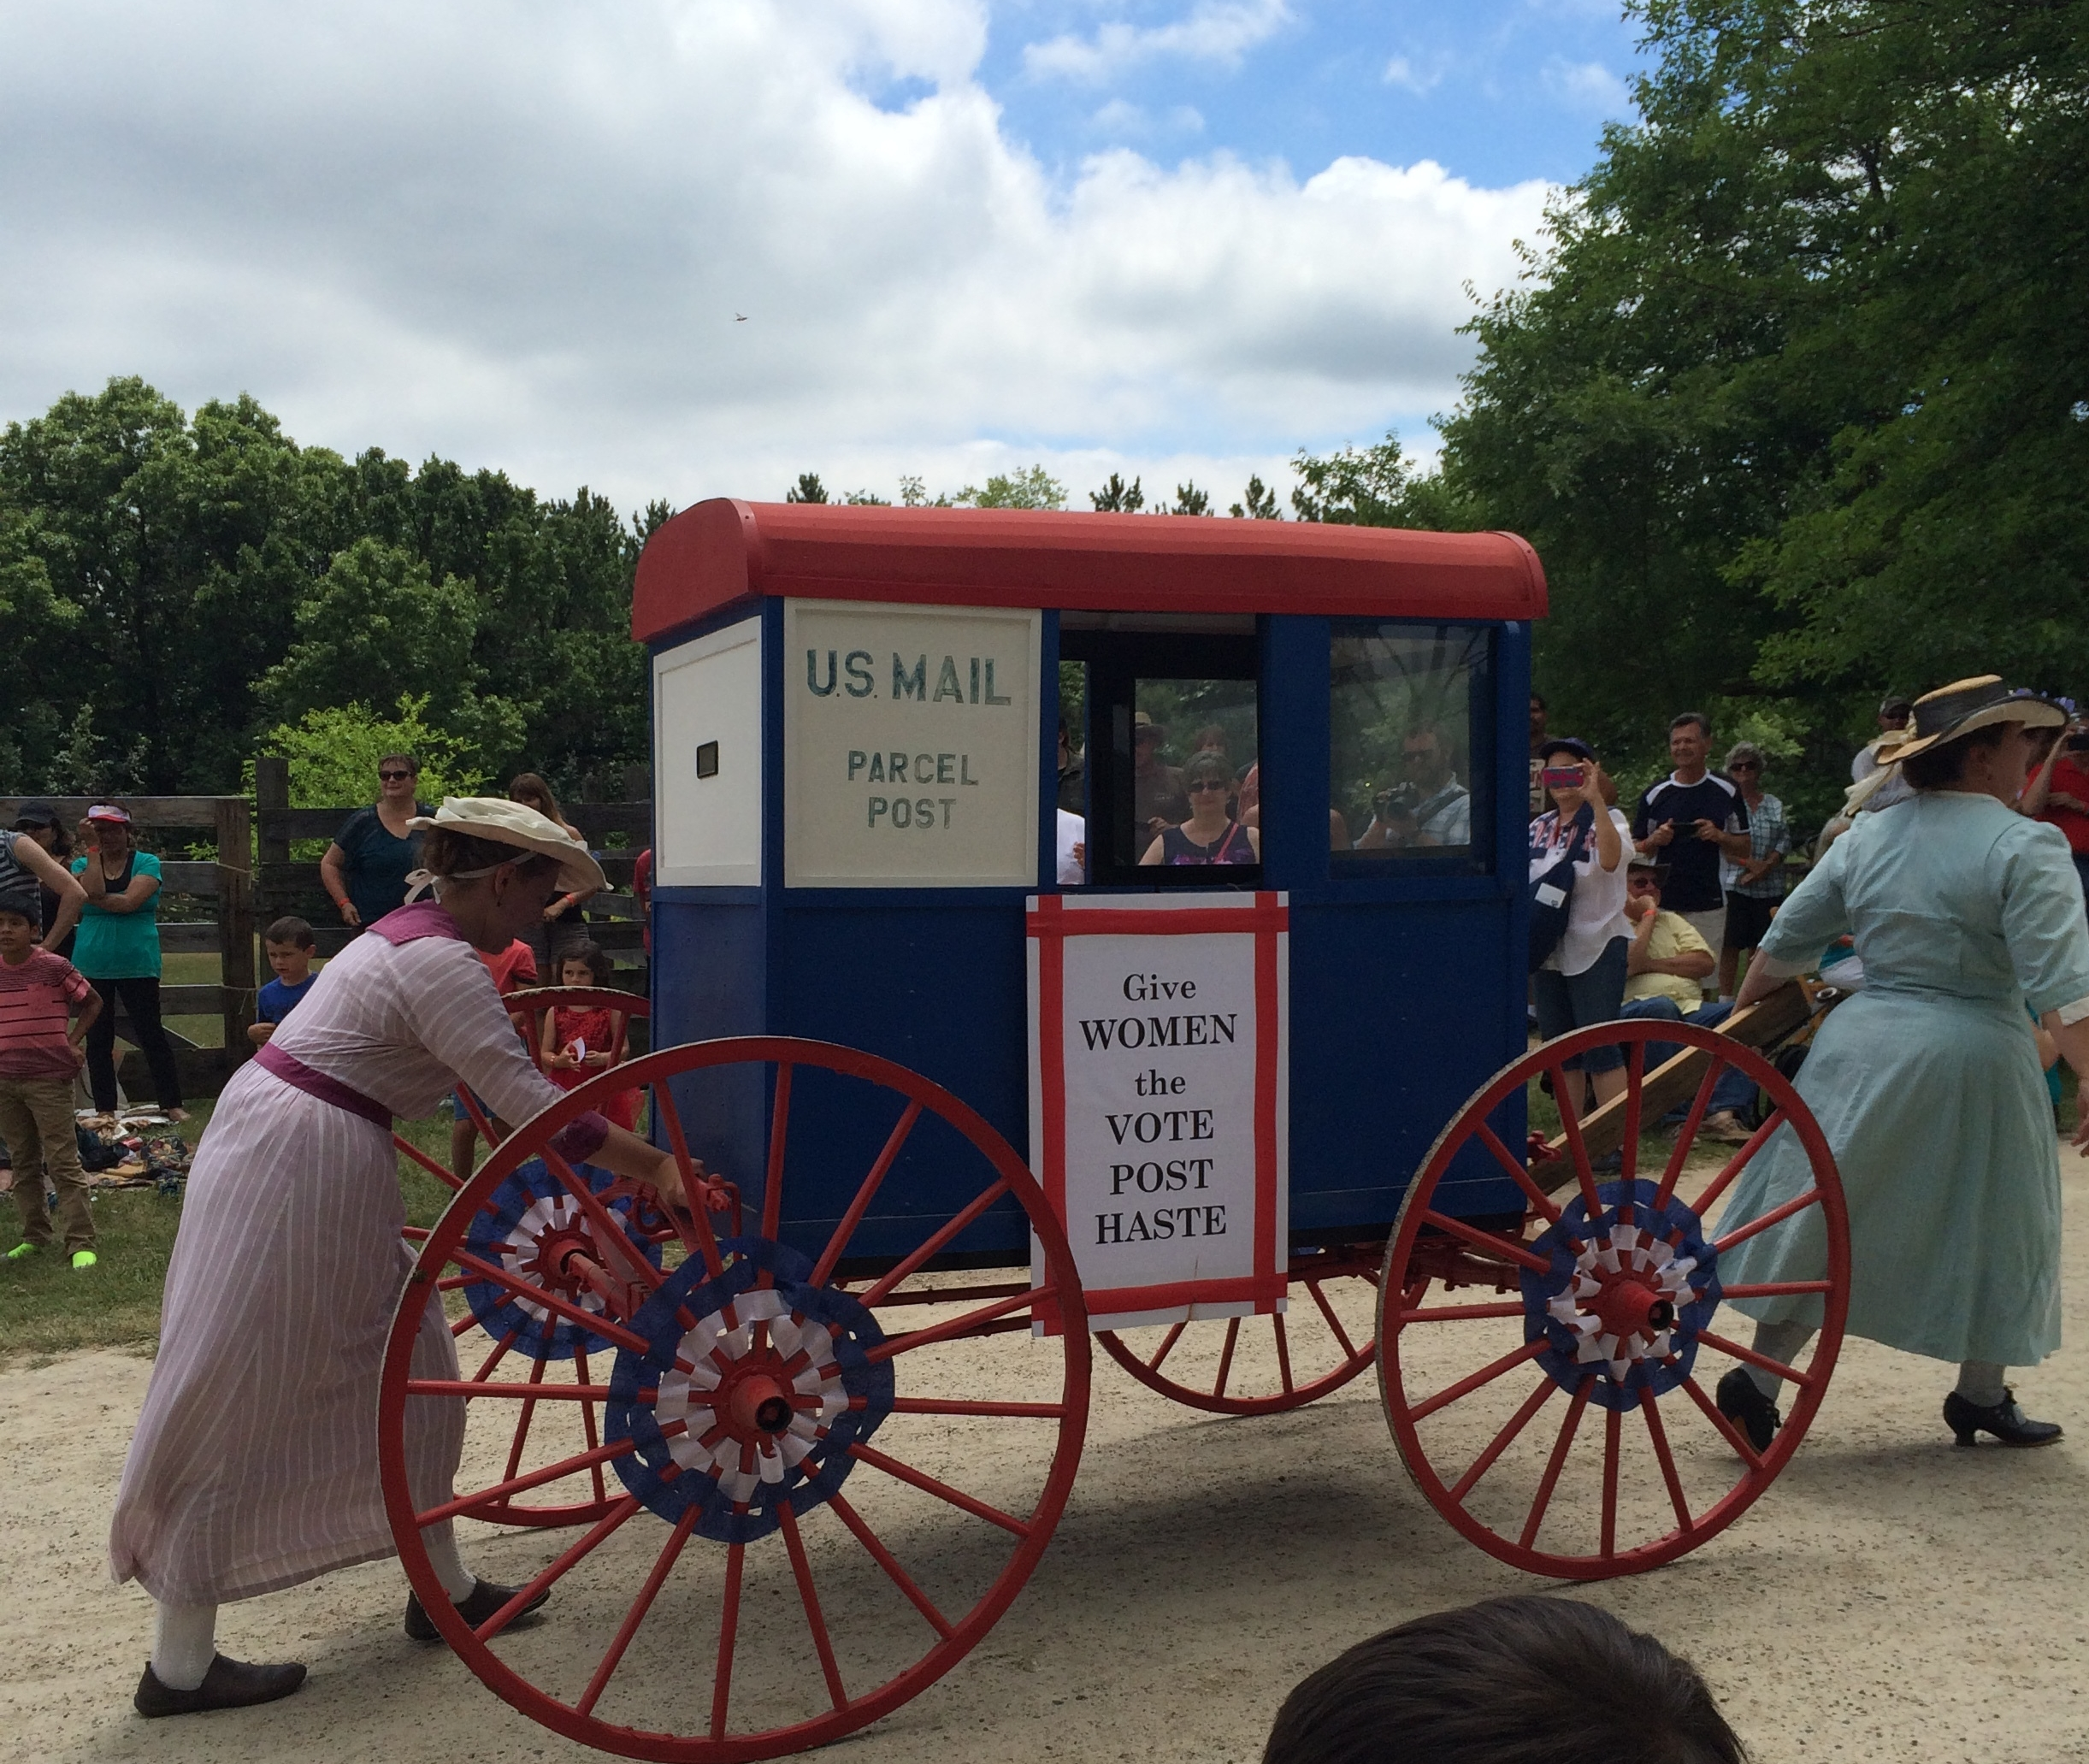 Women campaigning for women's suffrage in a 4th of July parade this summer. Every time women run for office, vote, or campaign, we're honoring the legacy of women's suffrage activists.